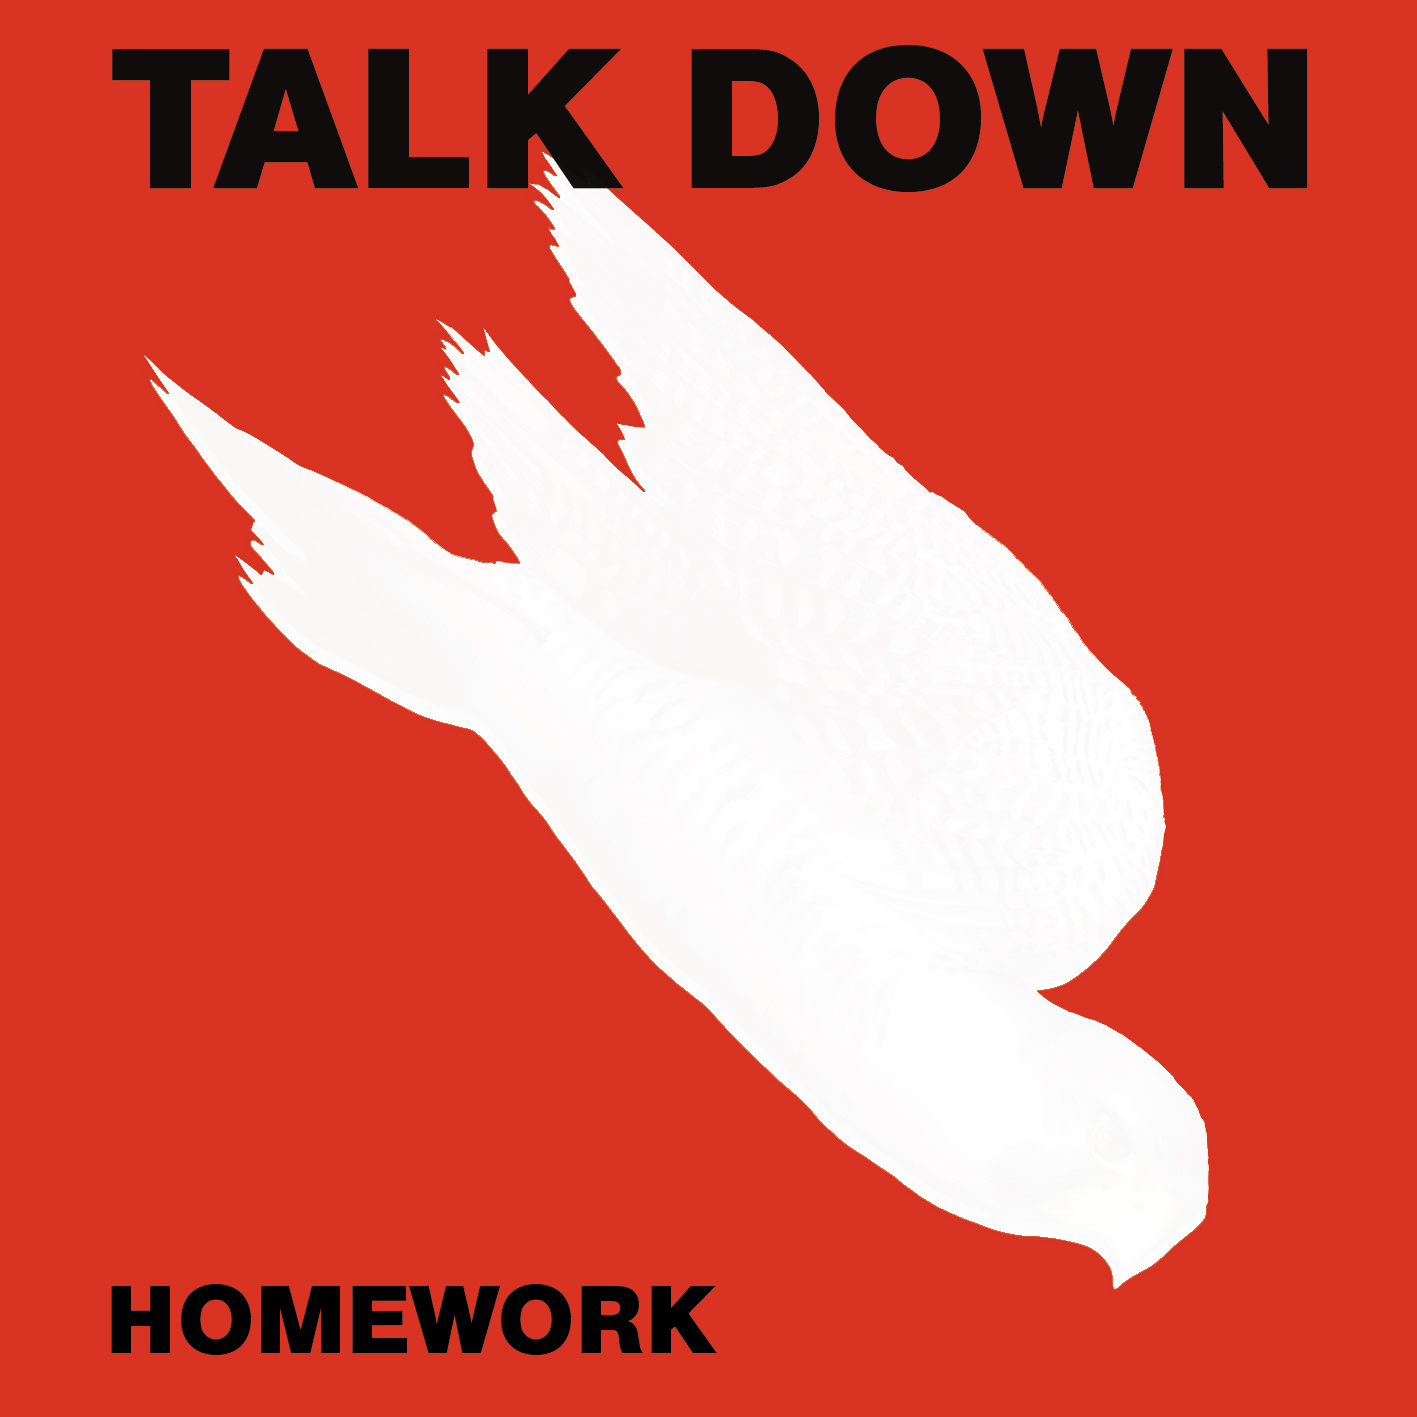 Homework - Talk Down